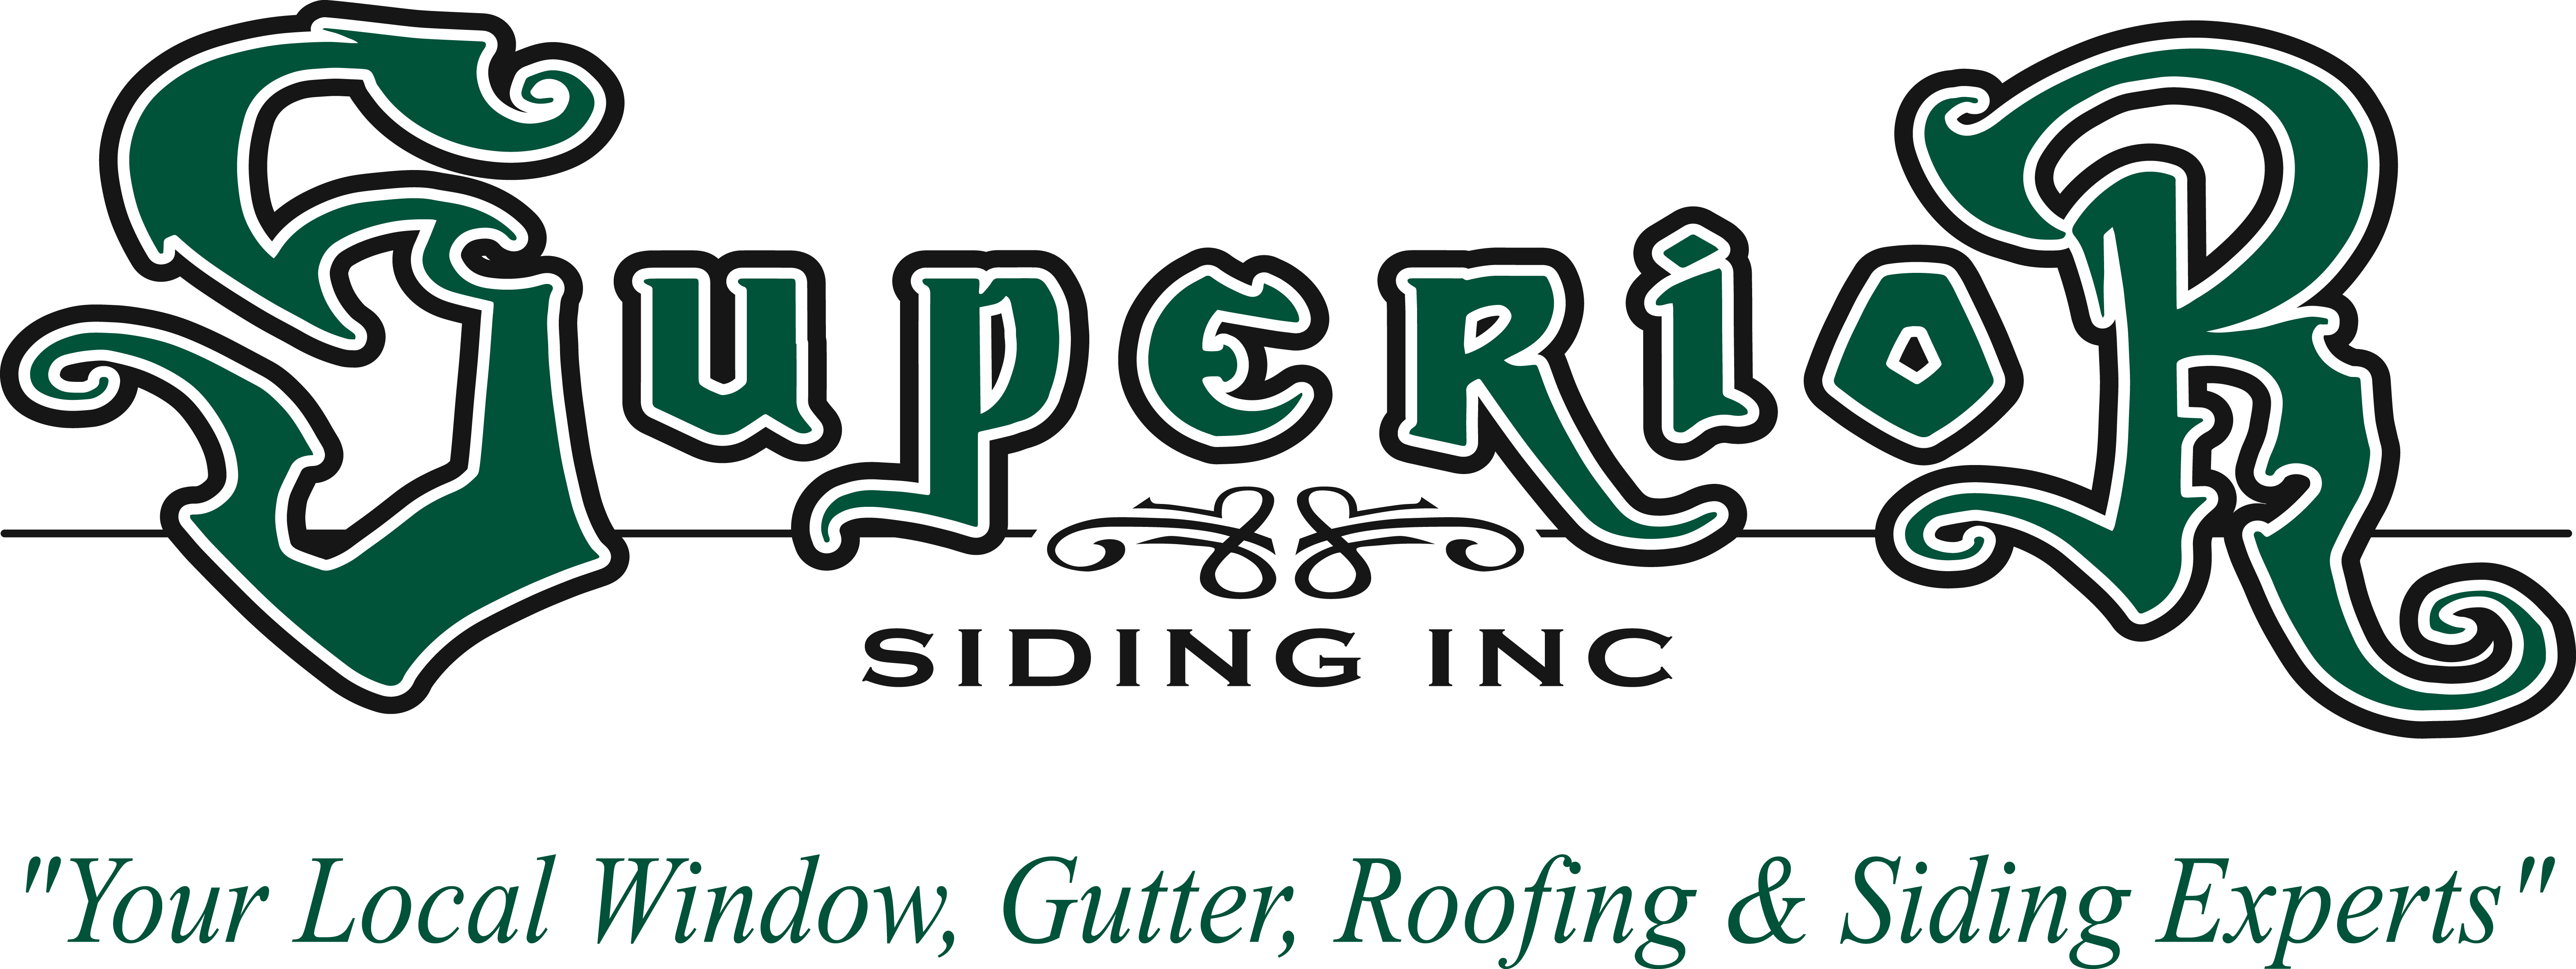 Superior Siding Inc